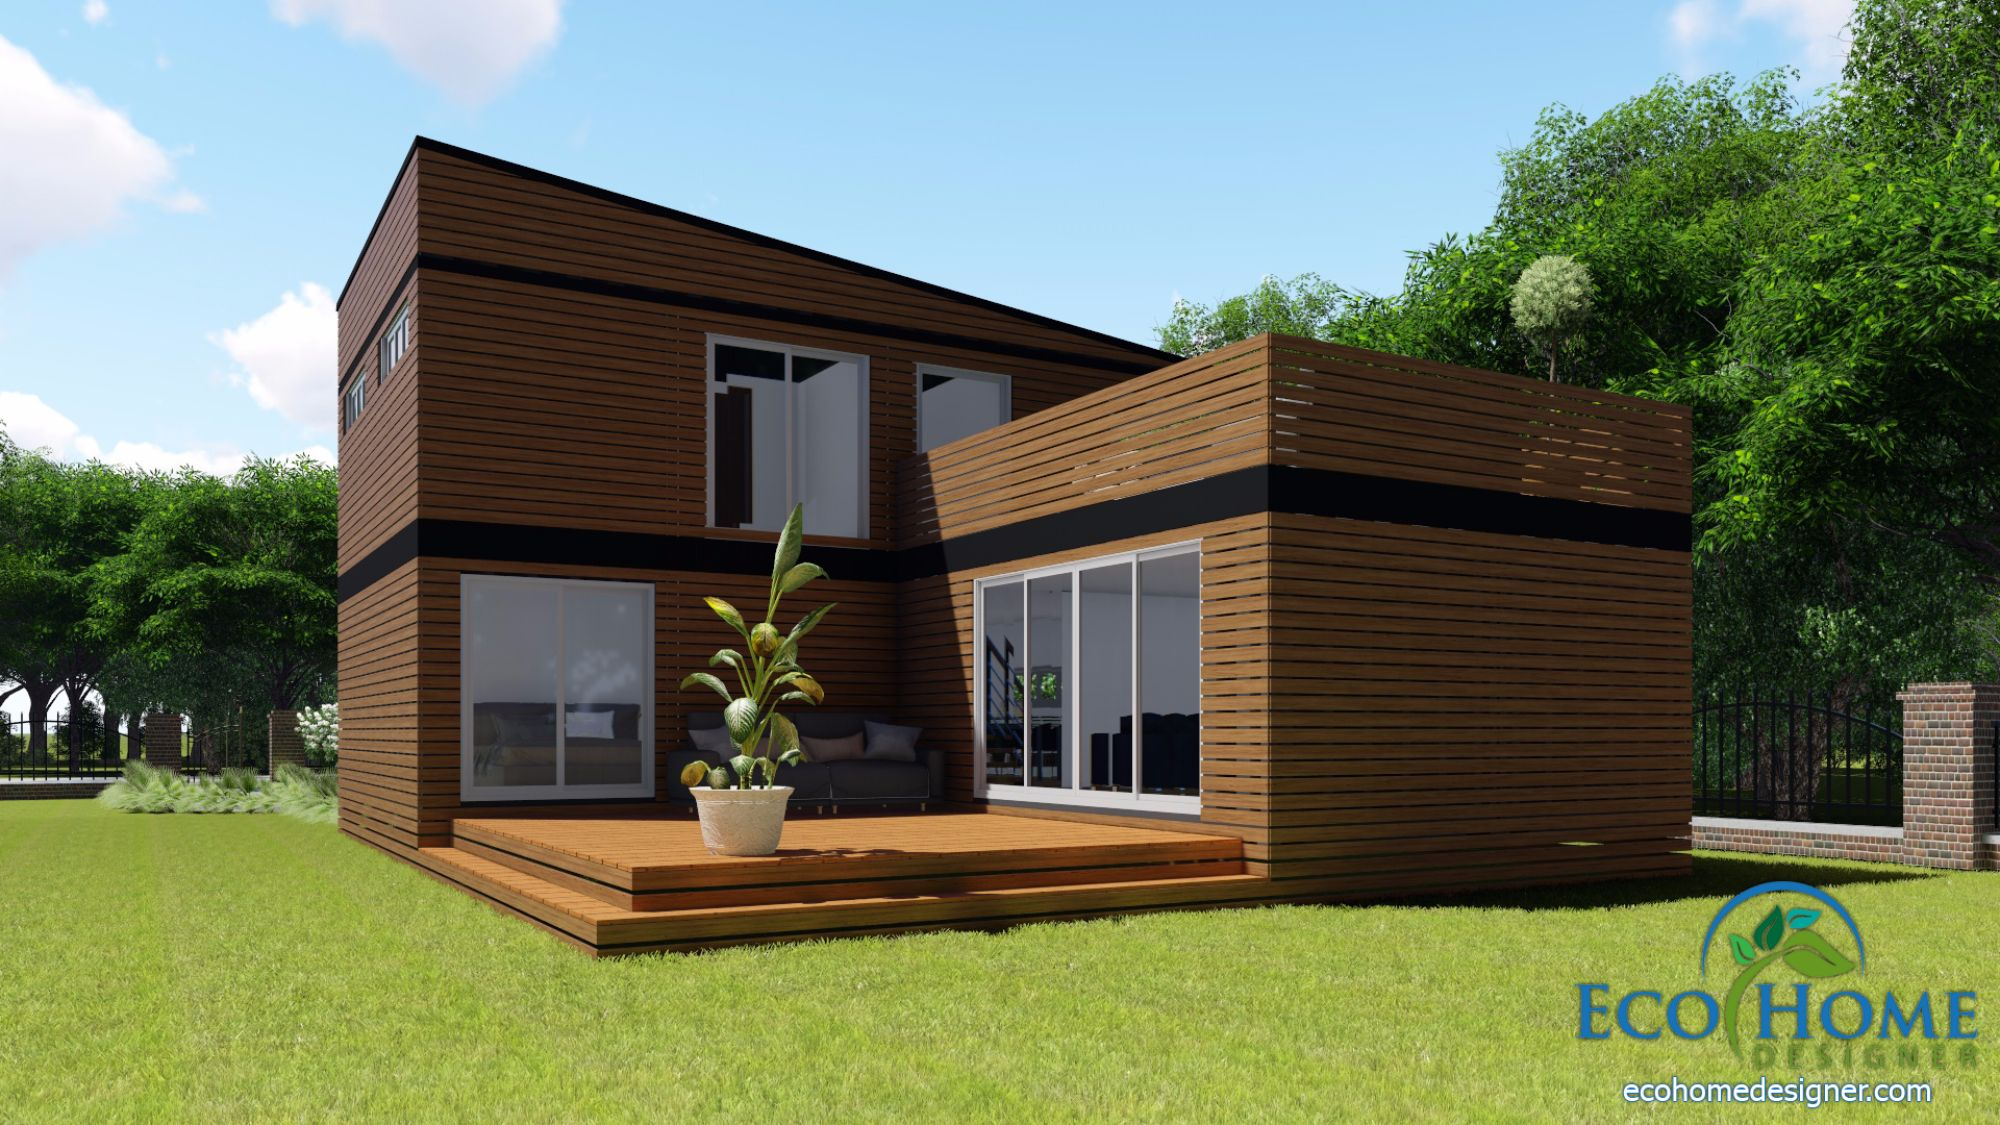 Sch17 10 x 20ft 2 story container home plans eco home for Home house plans